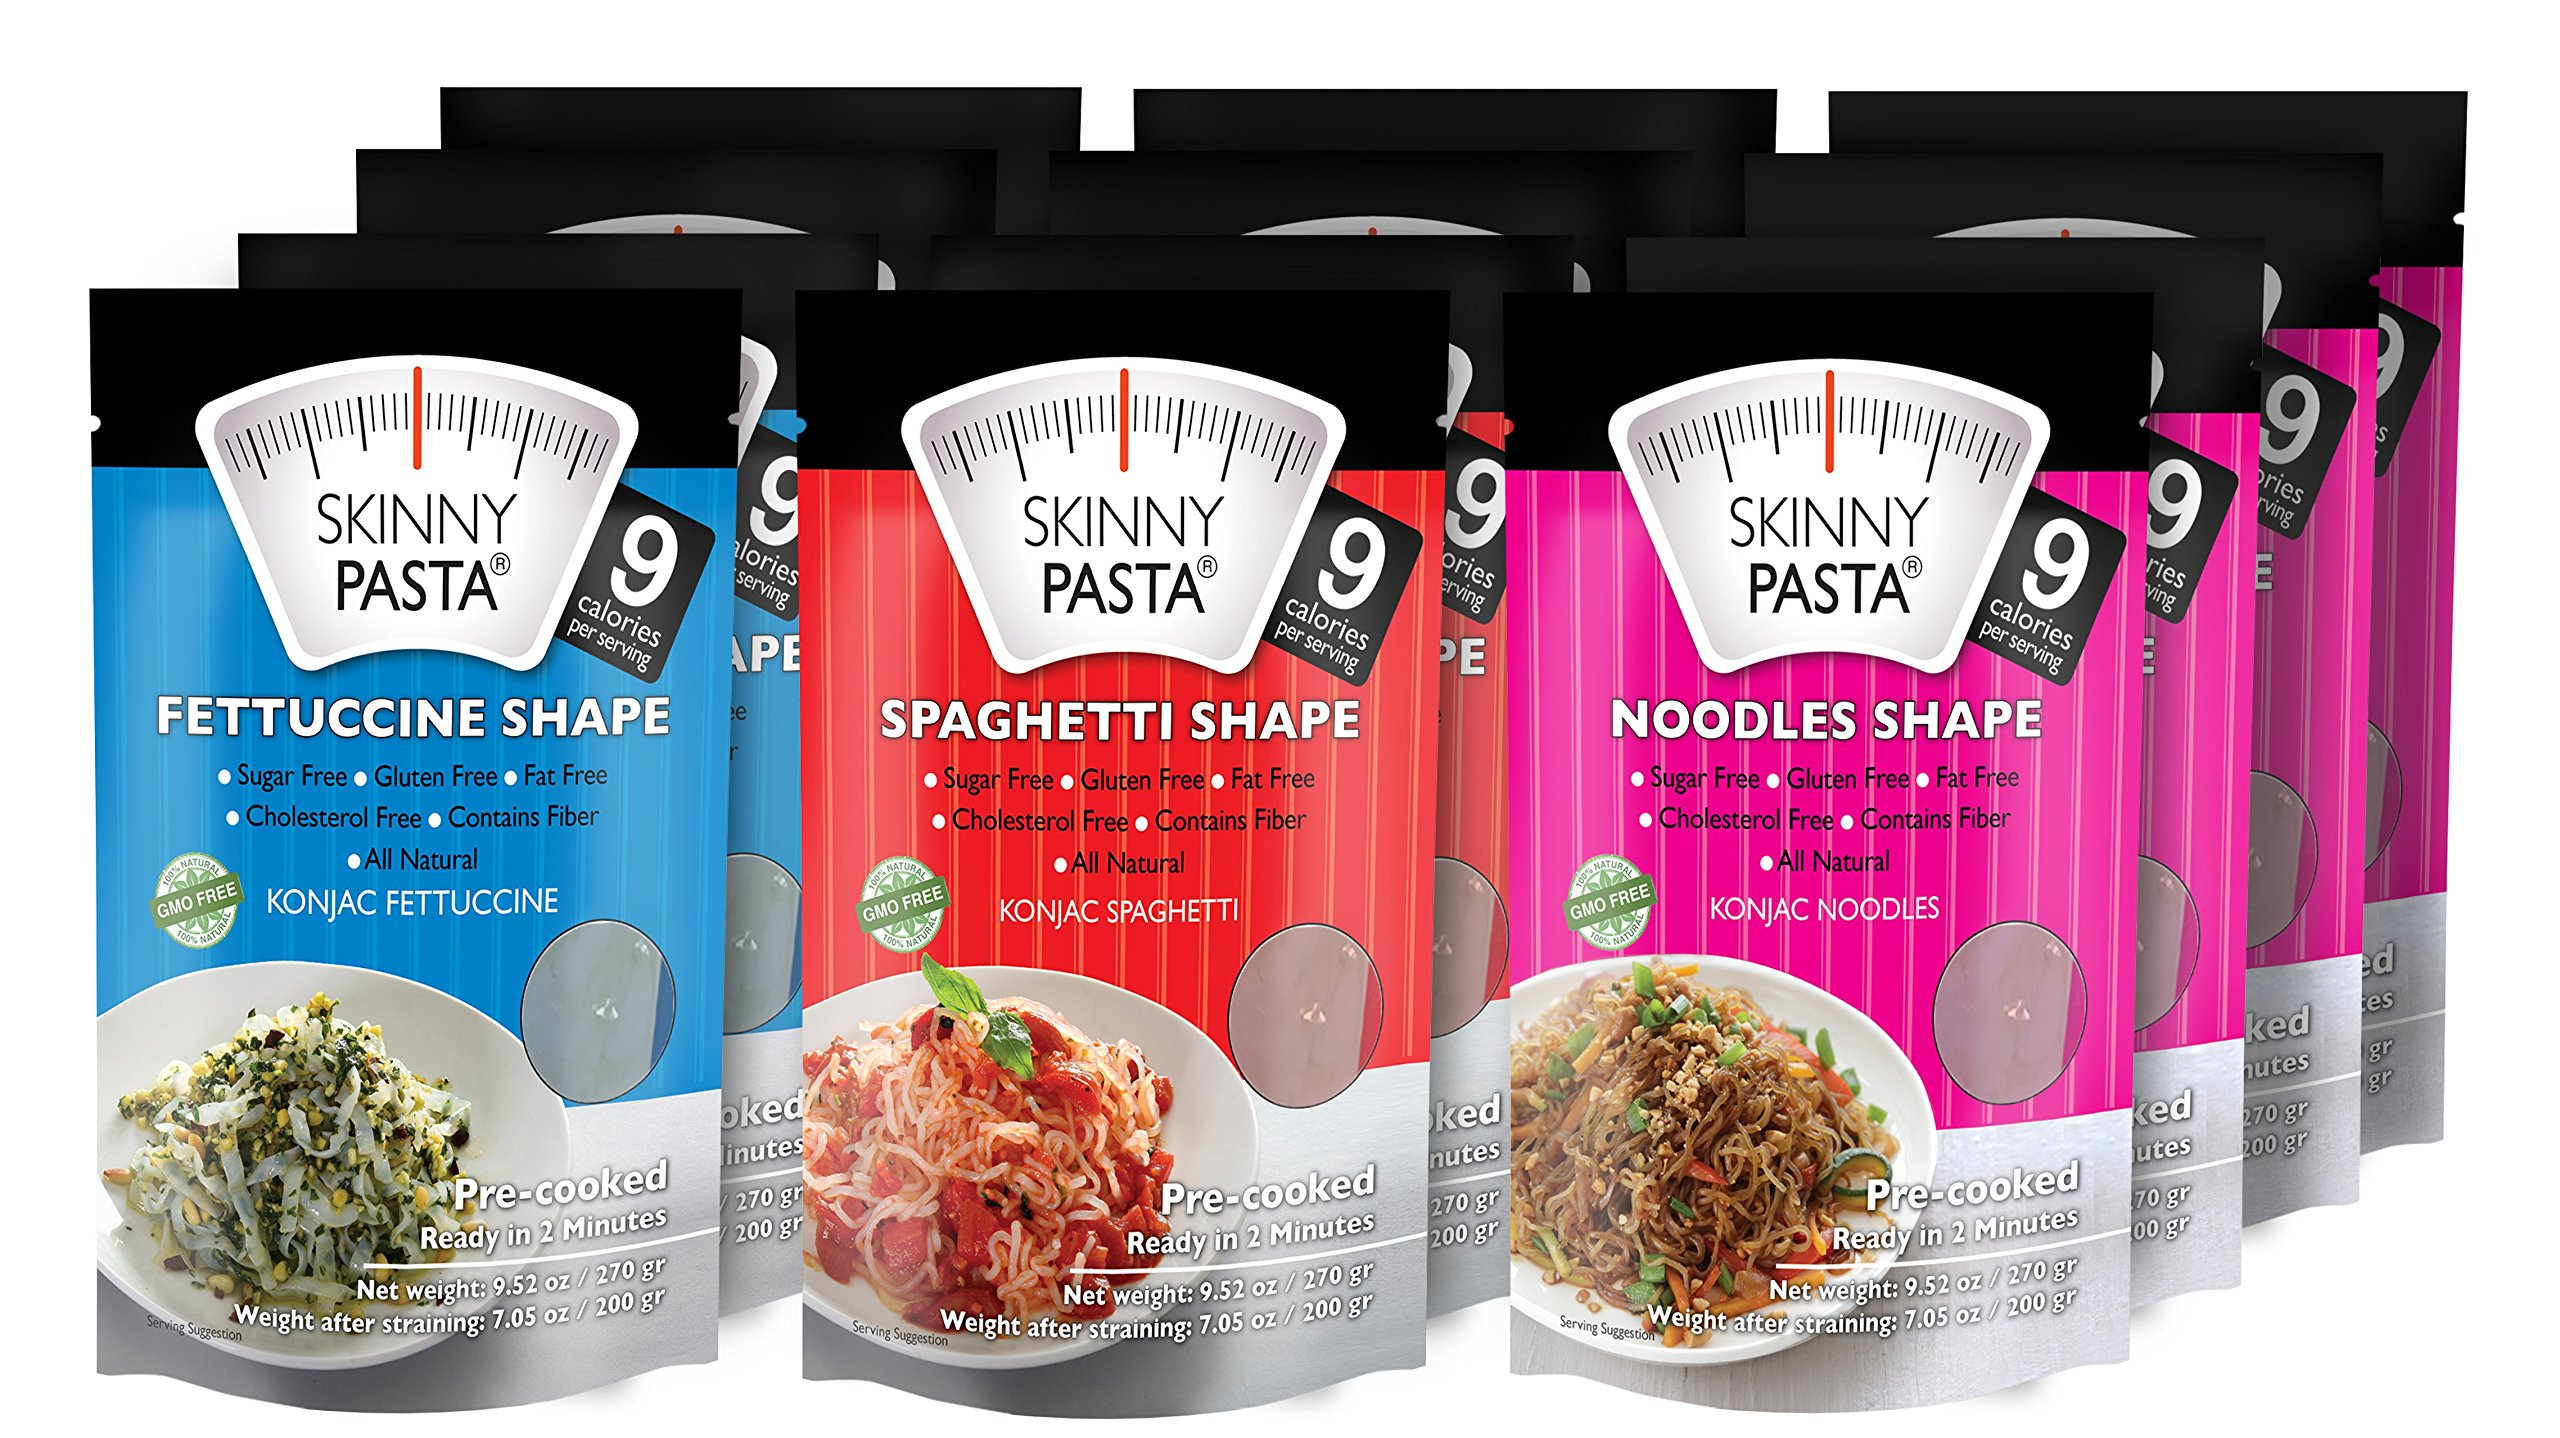 Skinny Pasta Italian Mix 9.52 oz (12 Pack) - The Only Odor Free 100% Konjac Noodle (Shirataki Noodles) - Pasta Weight loss - Low Calorie Food - Healthy Diet Pasta